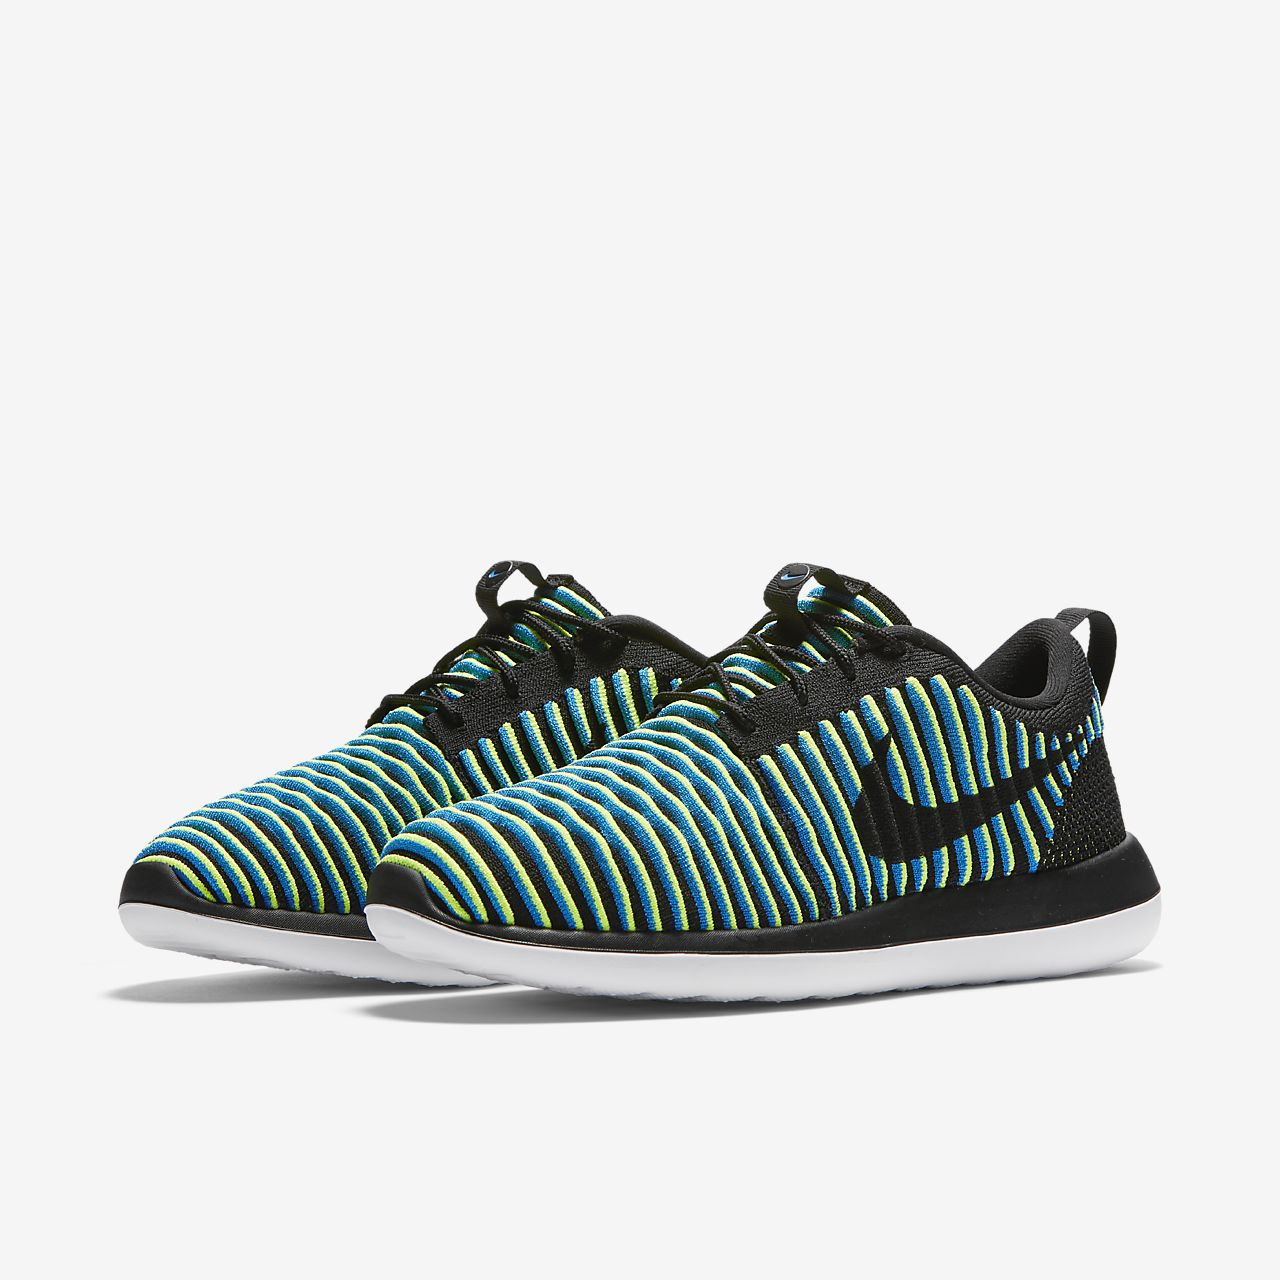 056bd6ecd026 Nike Roshe Flyknit   Nike Sneakers Online at Best Prices ...